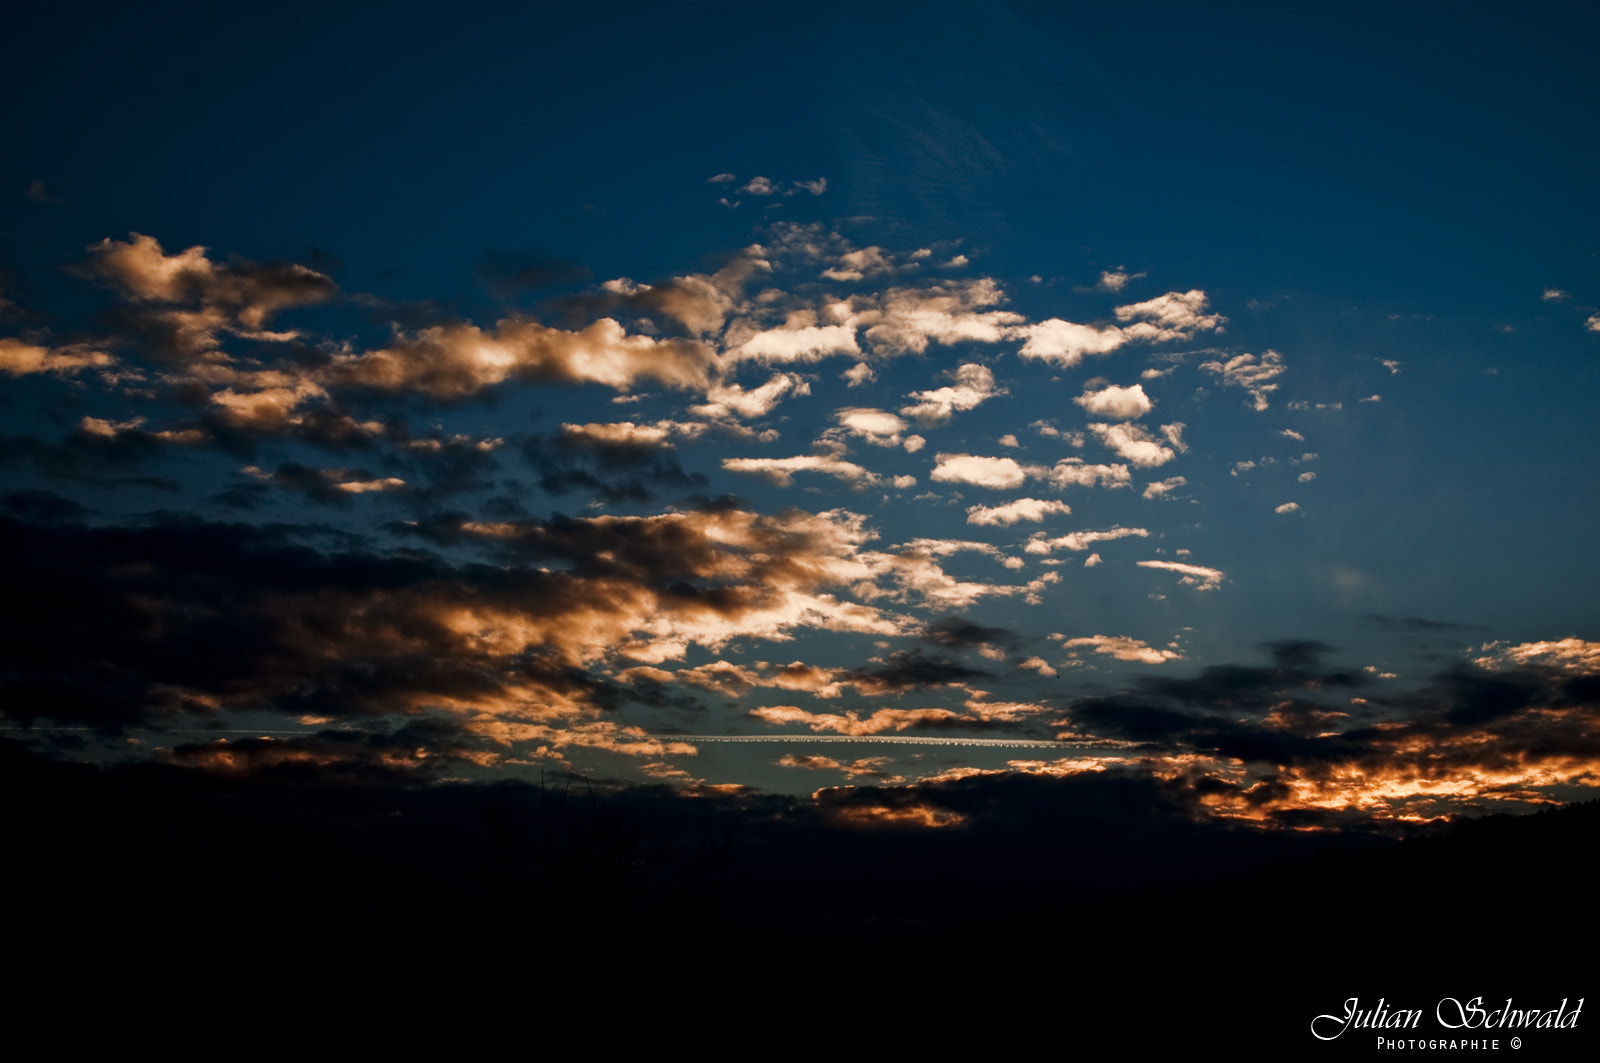 Photograph Sunset with blue Sky by Julian Schwald on 500px